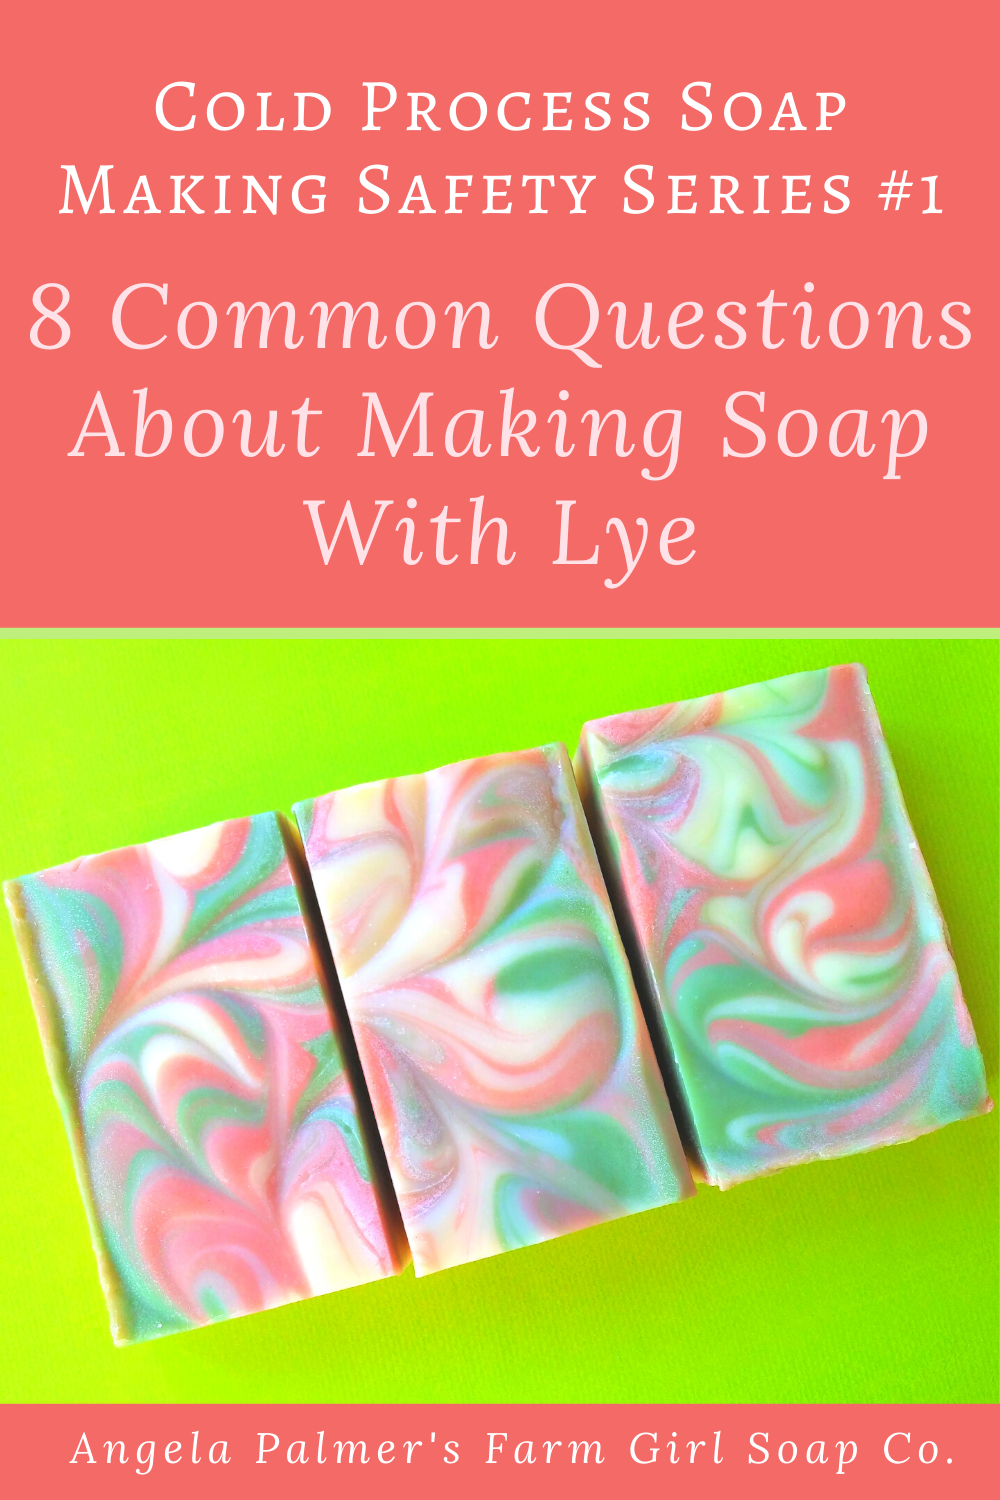 Ready to learn how to make your own soap? Got questions about working with lye? Here are answers t the 8 most common questions about making soap with lye. By Angela Palmer at Farm Girl Soap Co.